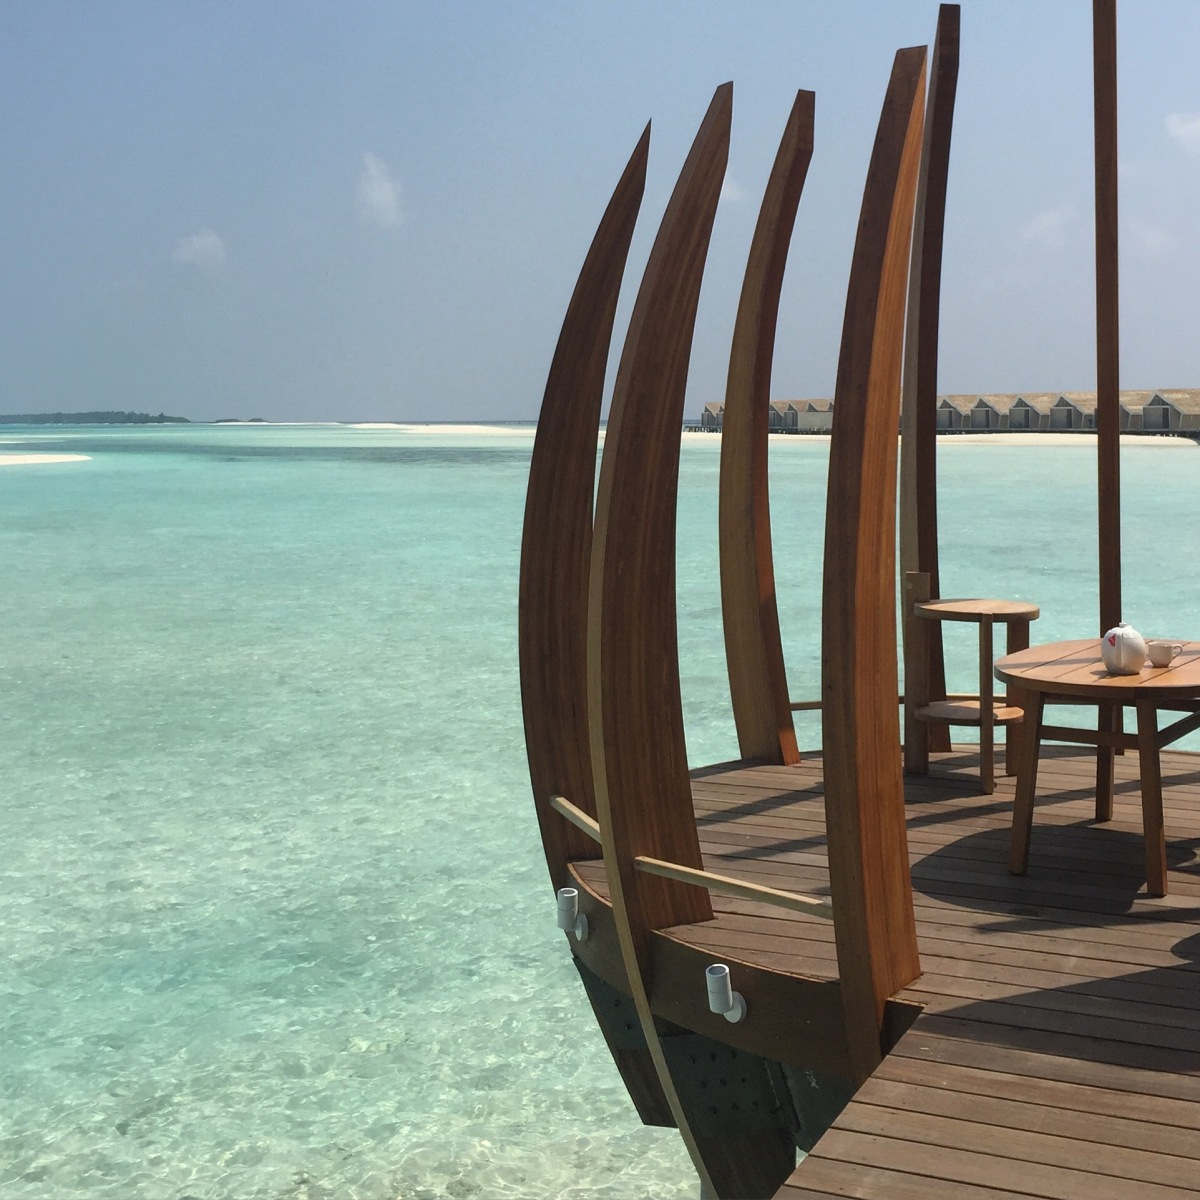 Maldives | How to Plan your Holiday in the Maldives